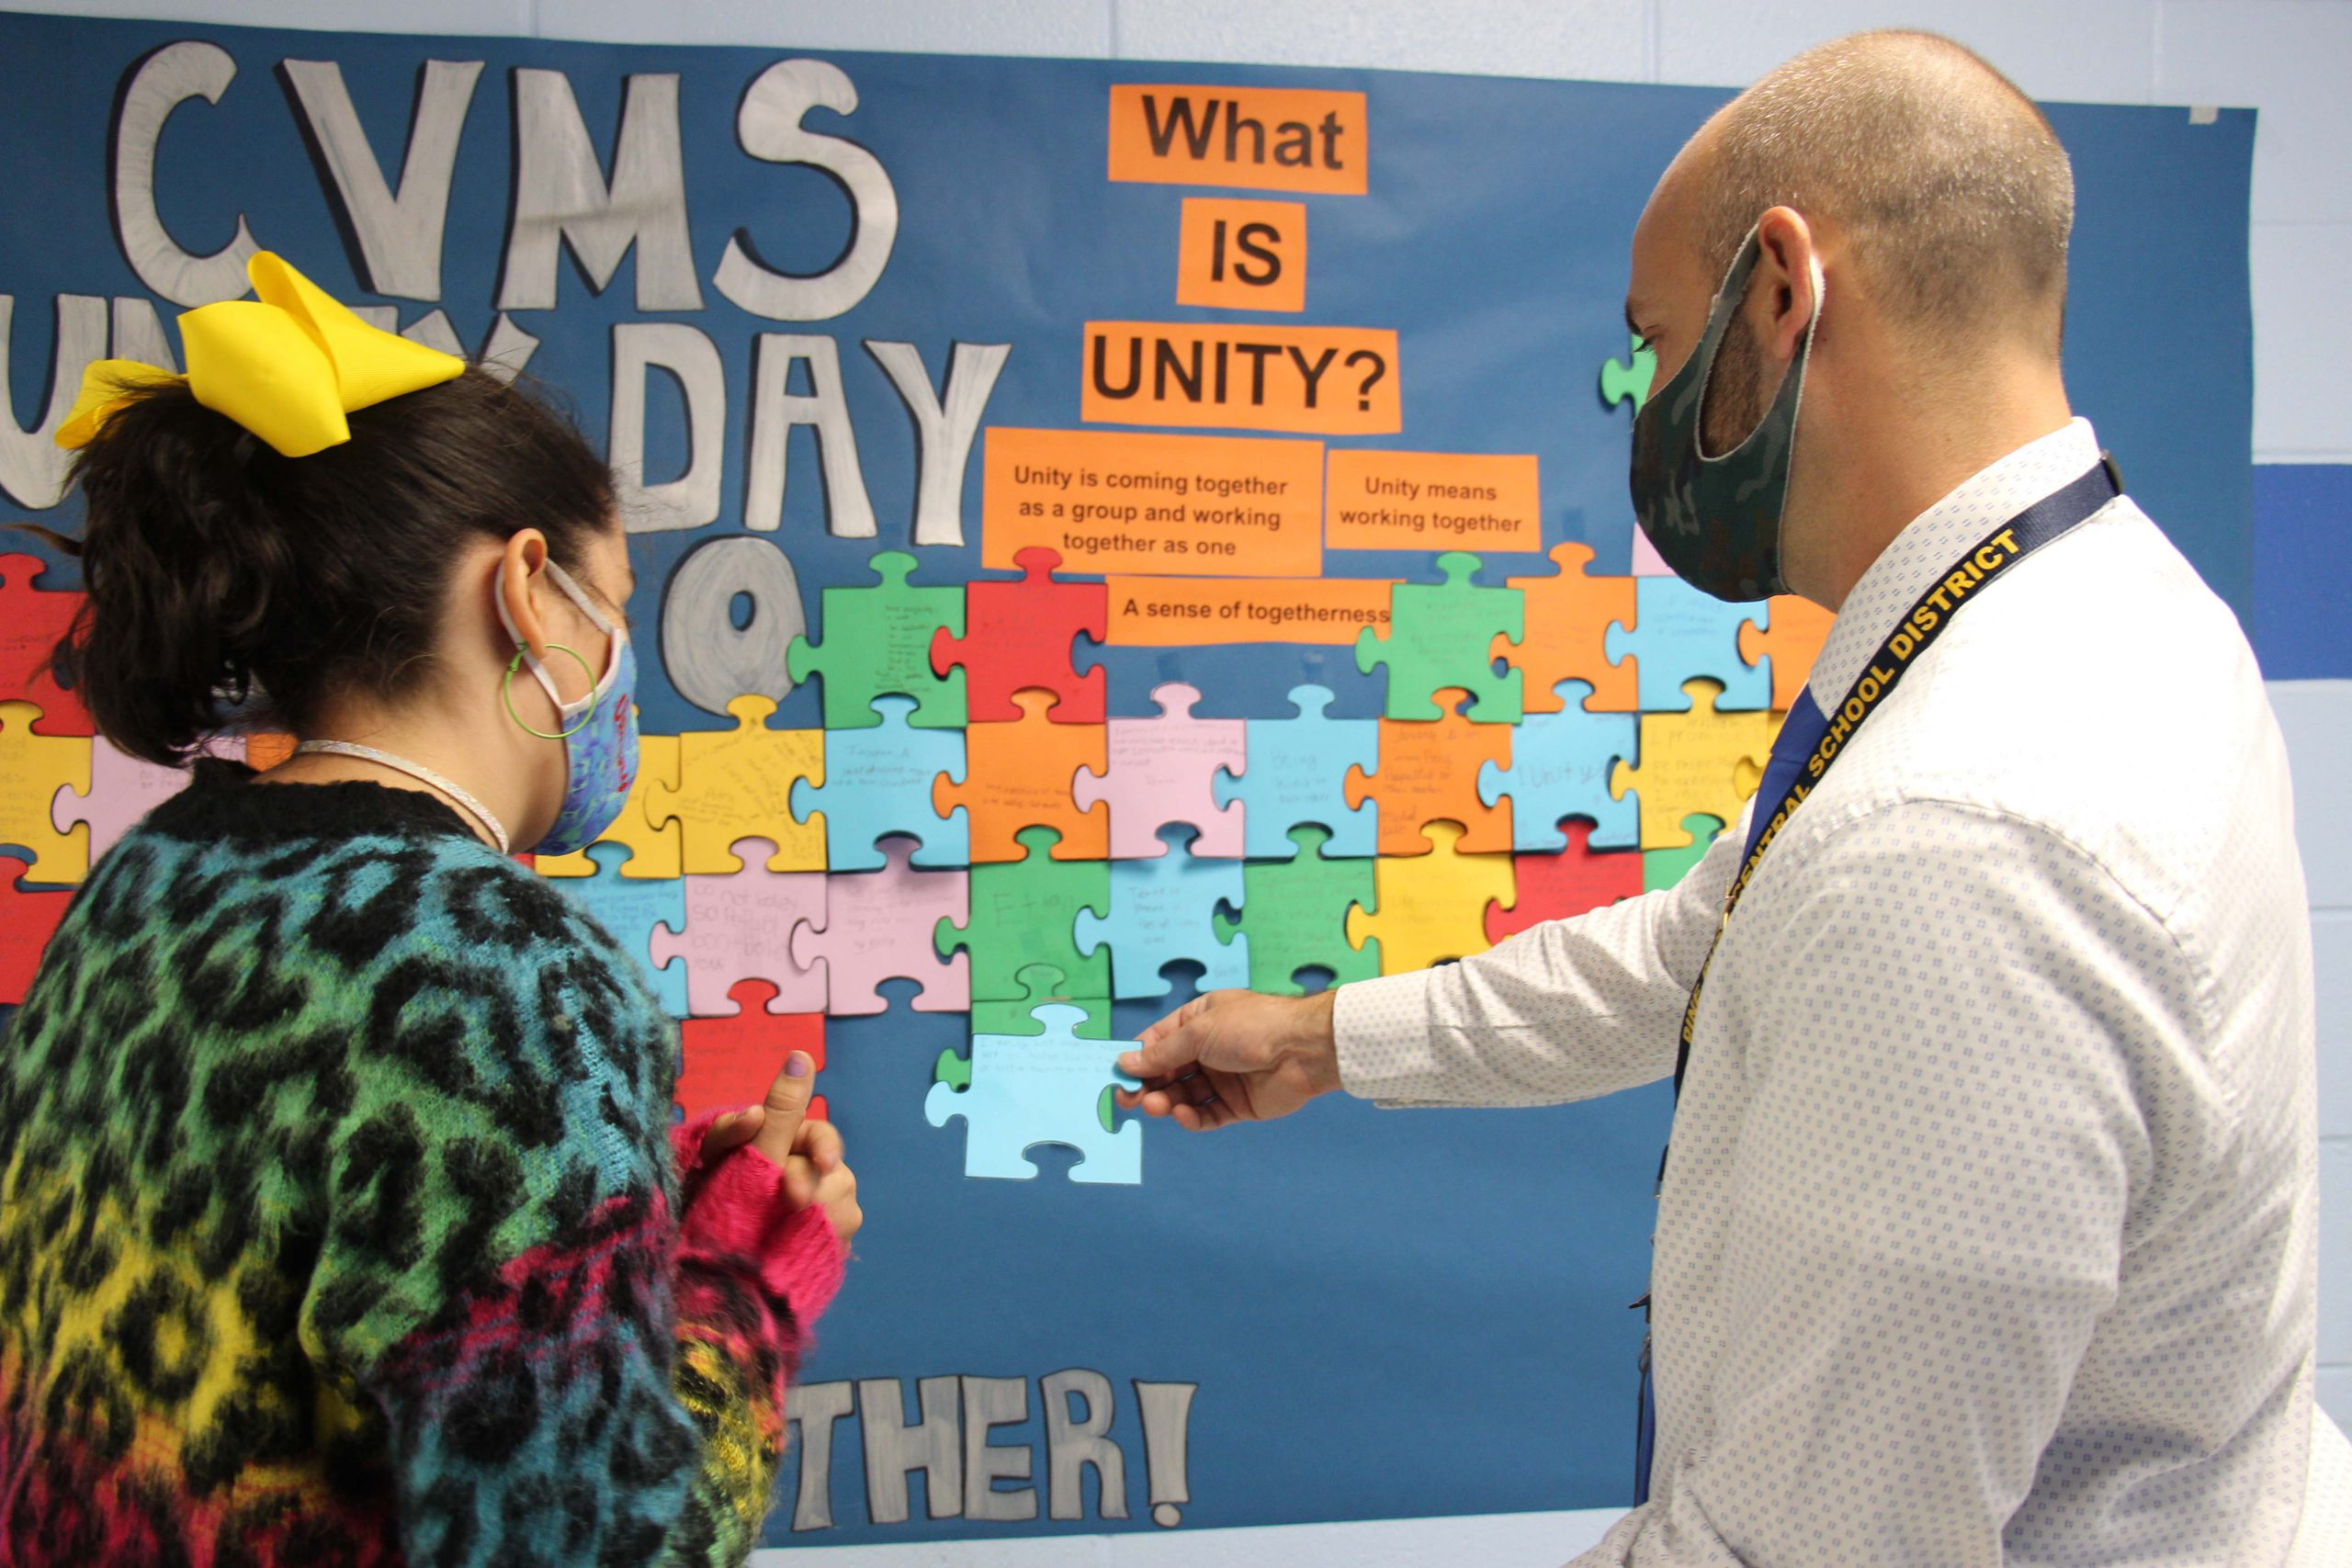 A man wearing a mask holds a blue puzzle piece out in front as a student , also wearing a mask, discusses what she wrote on it